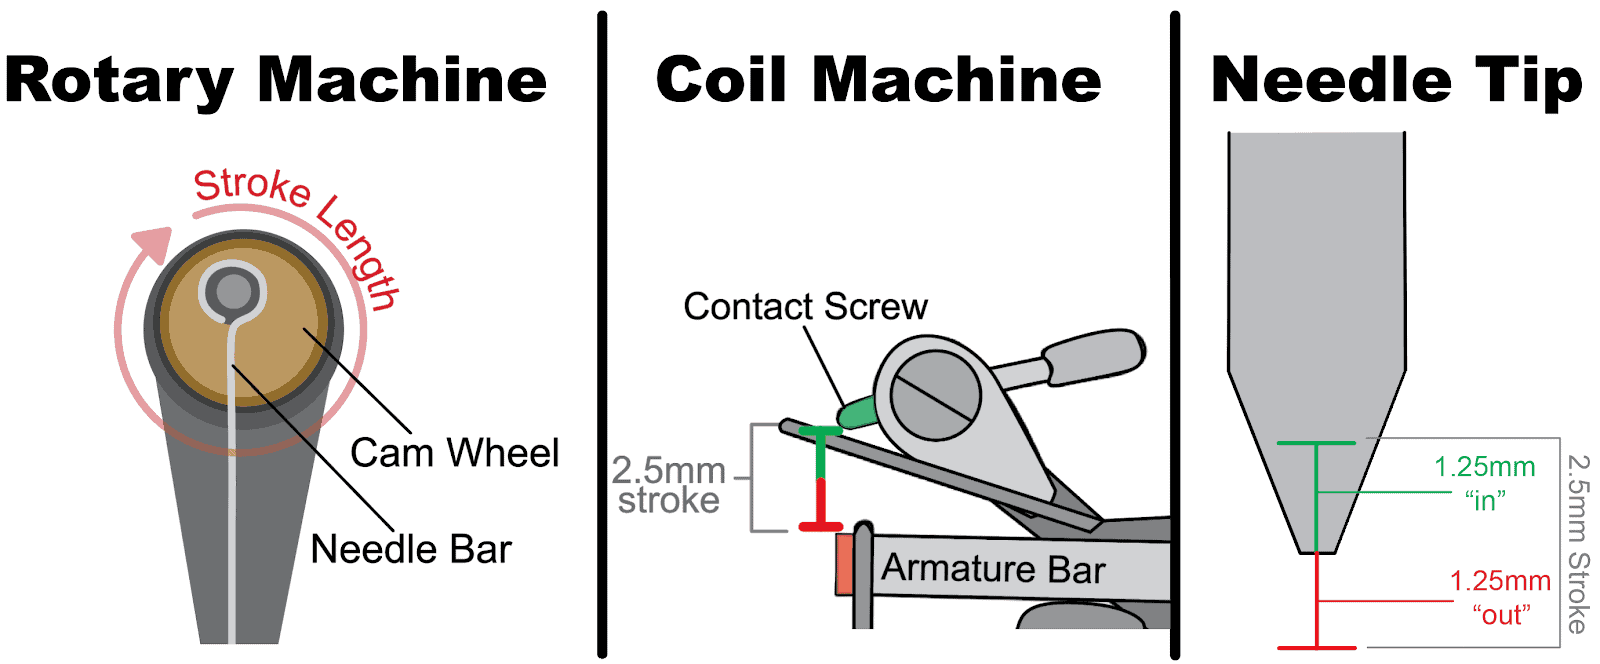 machine stroke length and parts